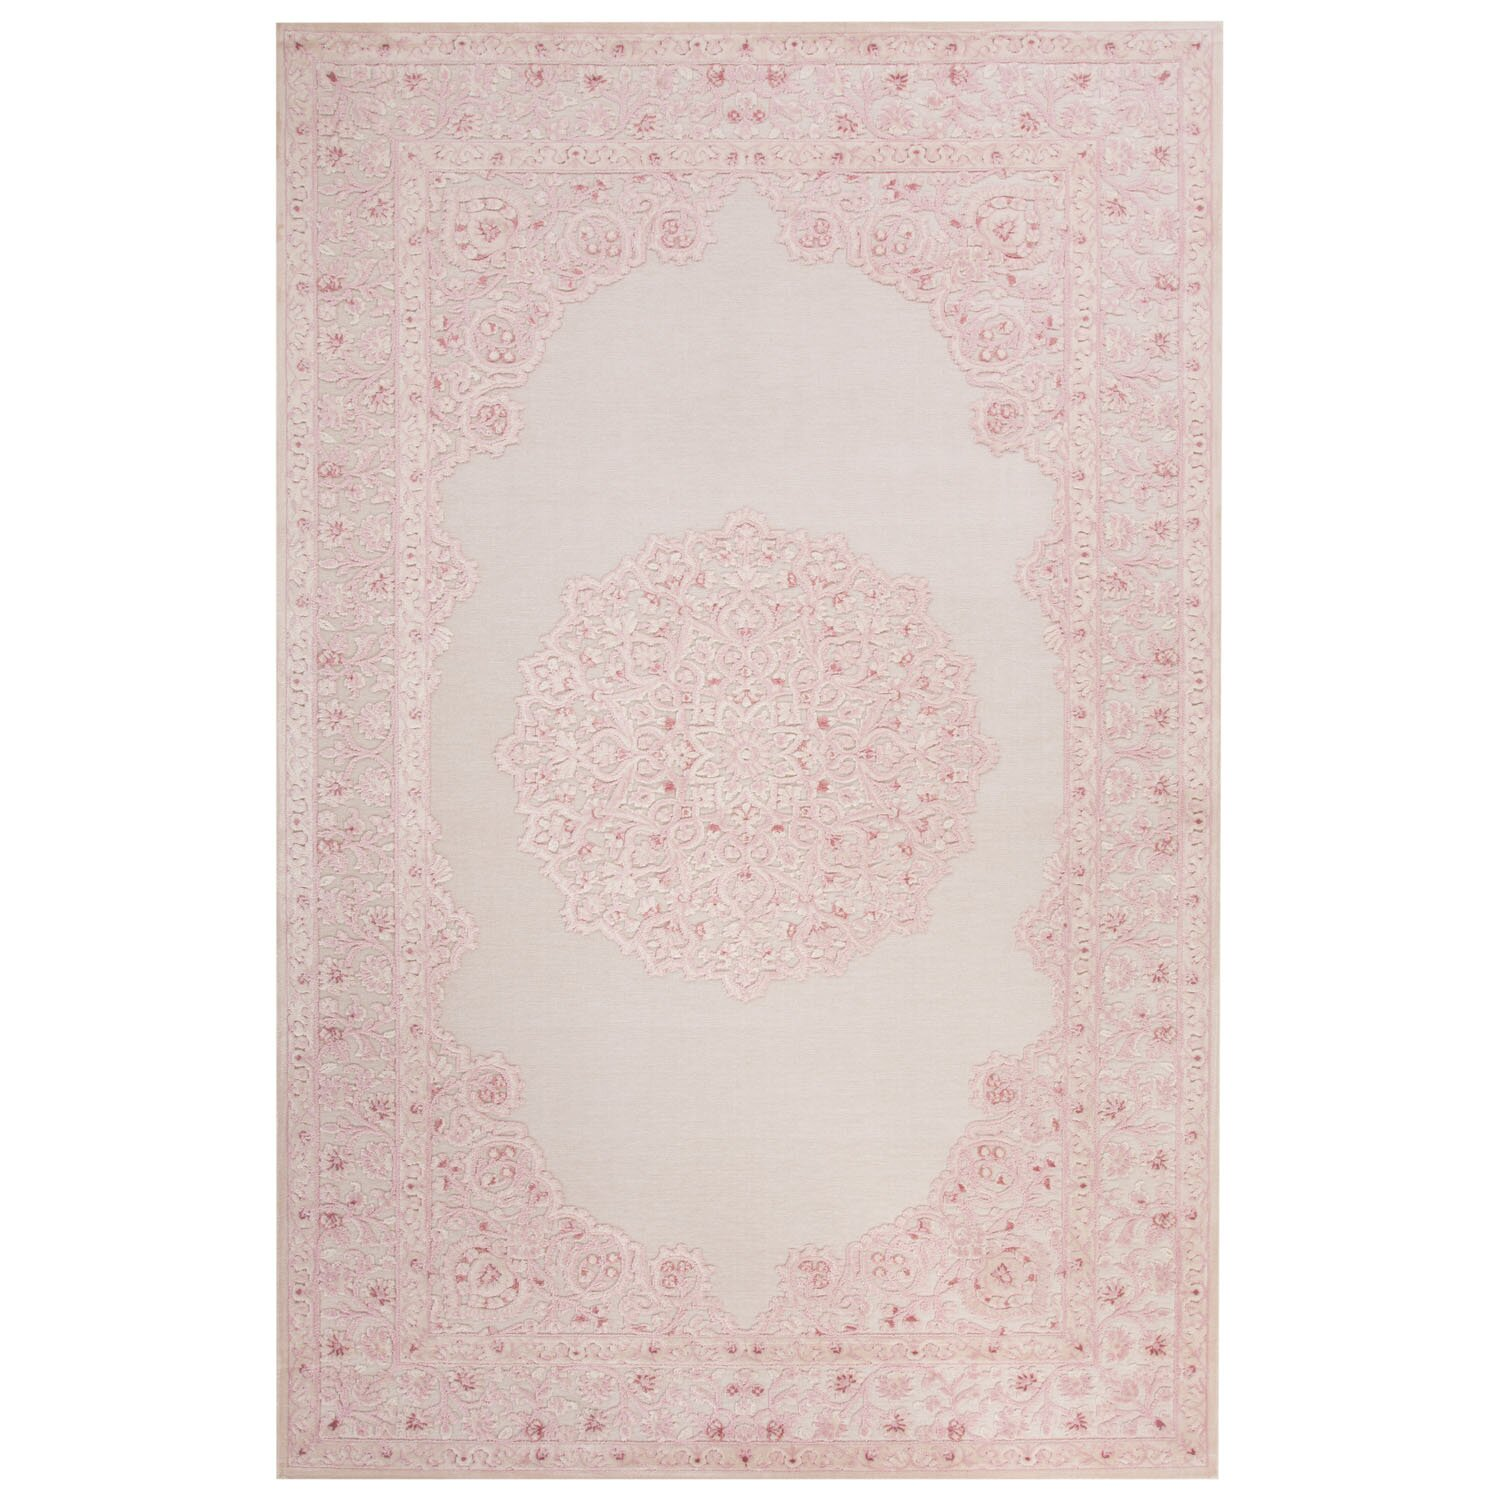 Jaipurliving Fables Ivory Pink Area Rug Amp Reviews Wayfair